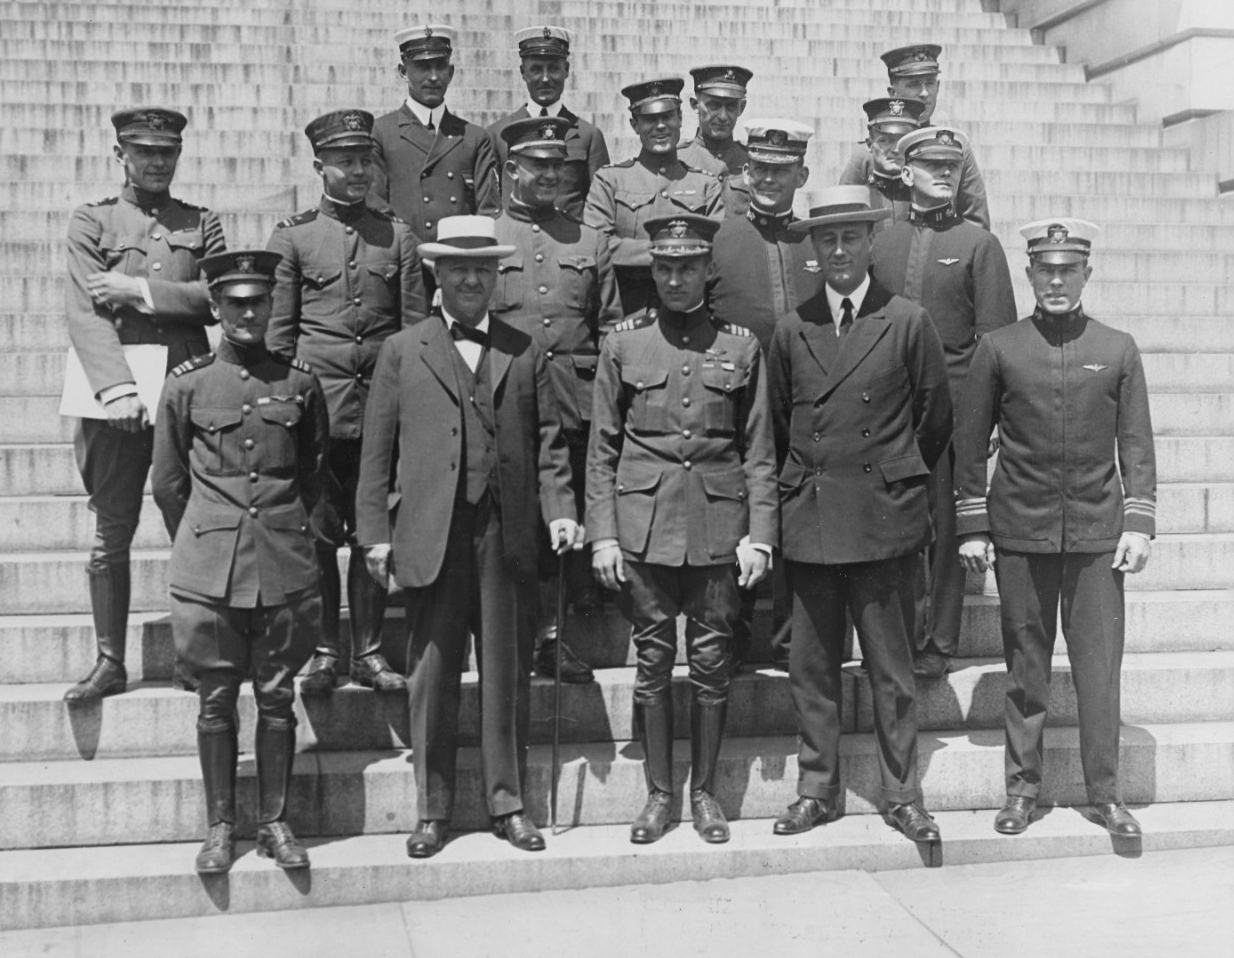 Lieutenant Commander A. C. Read; Josephus Daniels, Secretary of the Navy; Commander John H. Towers; Franklin D. Roosevelt, Assistant Secretary of the Navy; Lieutenant Commander P. Bellinger; Commander Richardson.